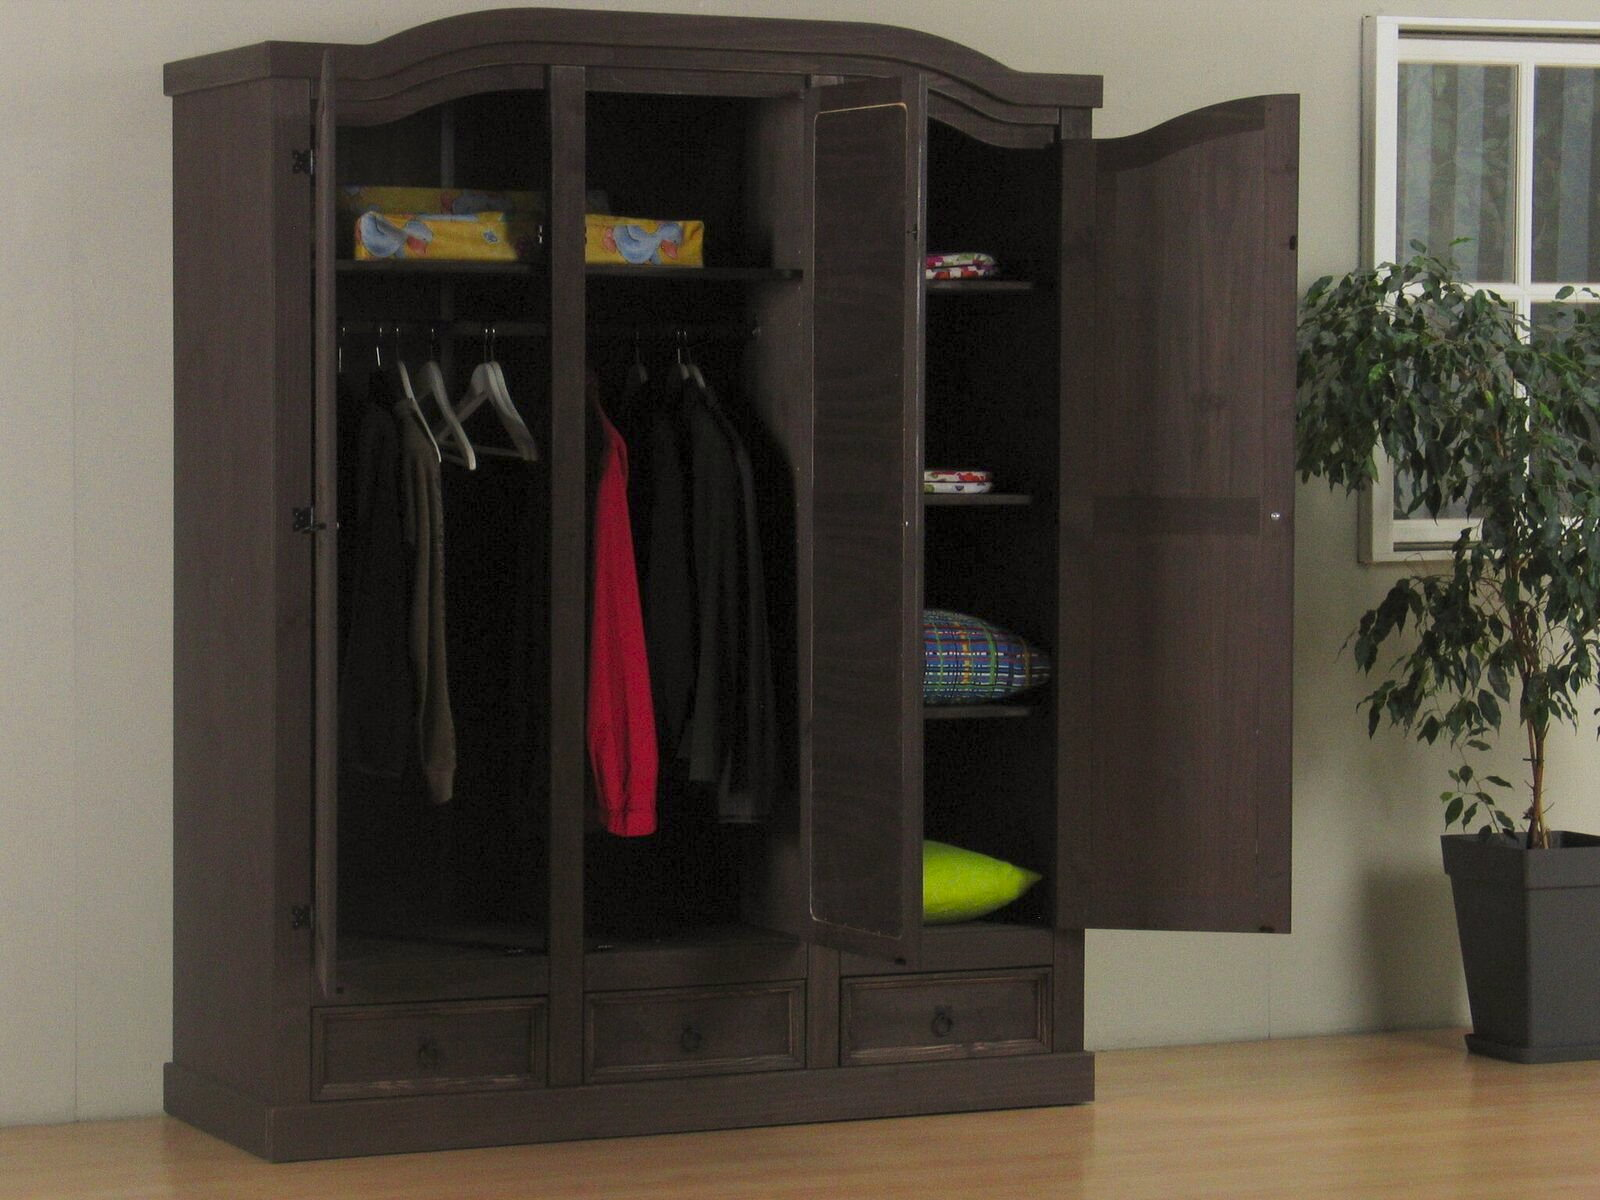 3 t riger kiefer kleiderschrank new mexico kolonial m bel wohnen schlafzimmer. Black Bedroom Furniture Sets. Home Design Ideas